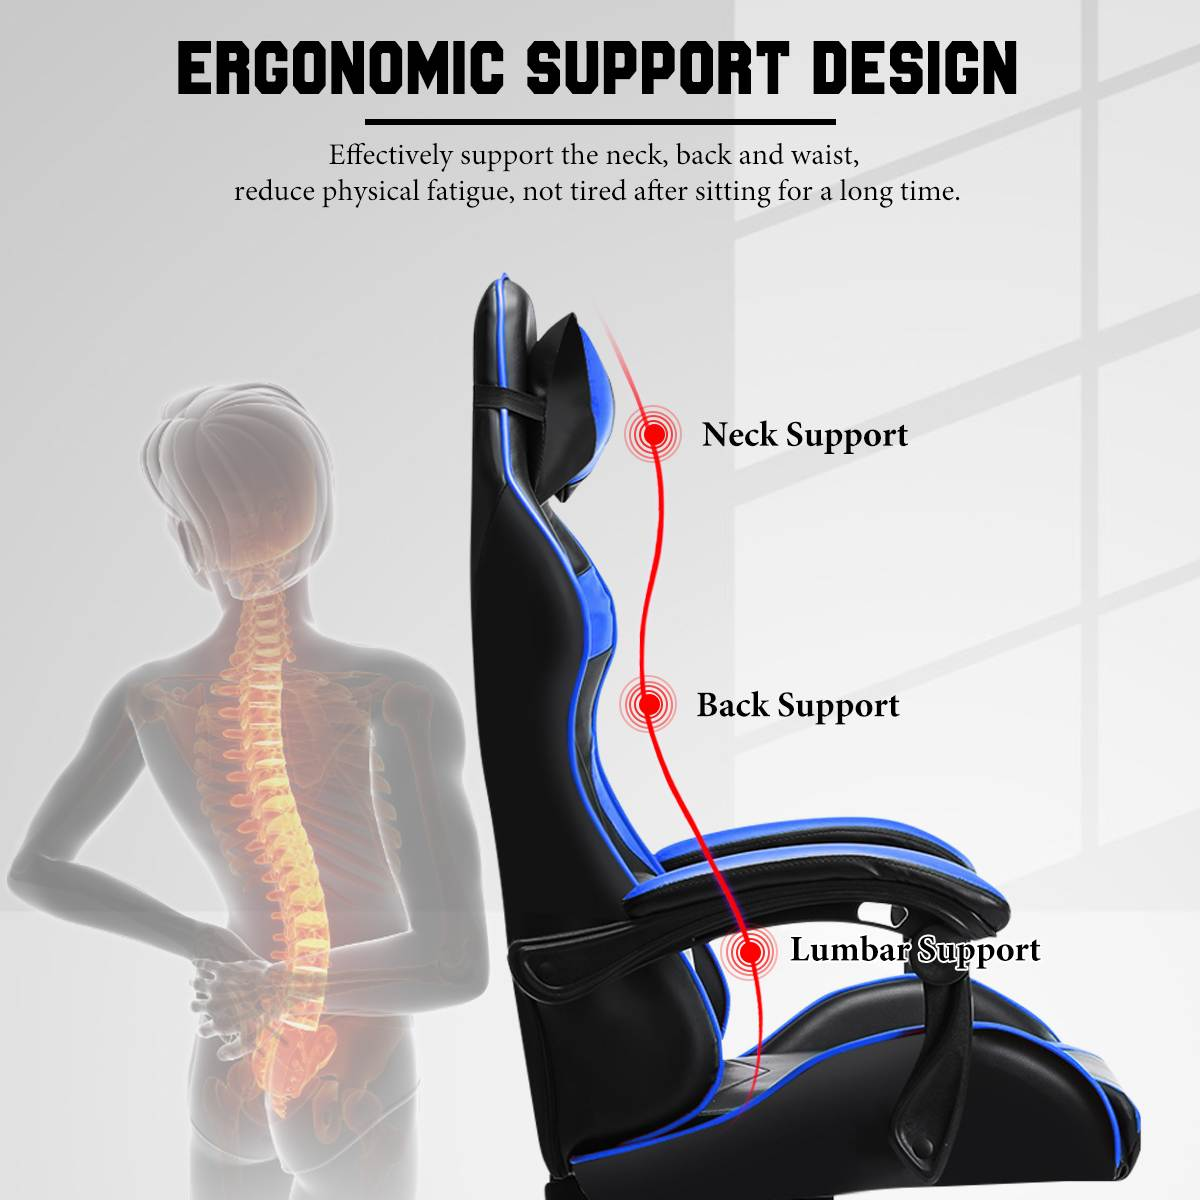 H178a7faa0c9545de95b1d9335bec319bU - Office Gaming Chair with Footrest Ergonomic Office Chairs Adjustable Swivel Leather High Back Computer Desk Chair with Headrest